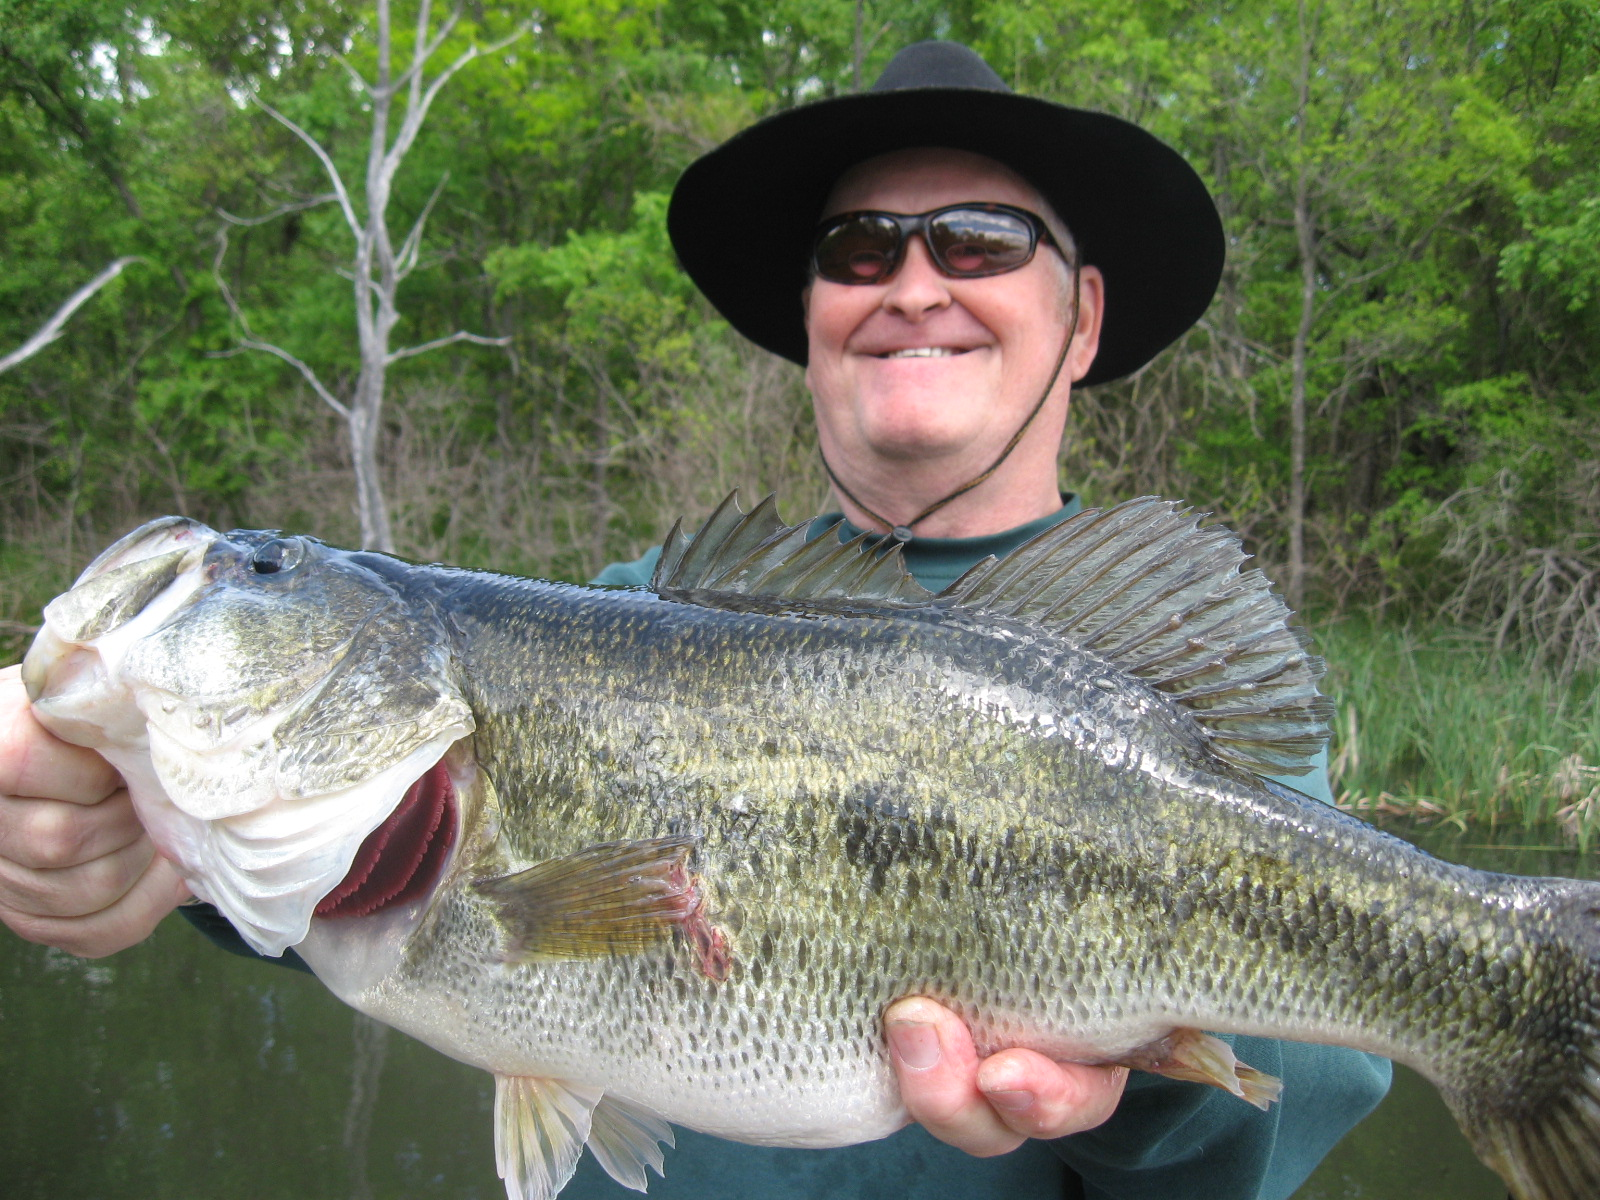 Big bass pictures, photos of trophy bass